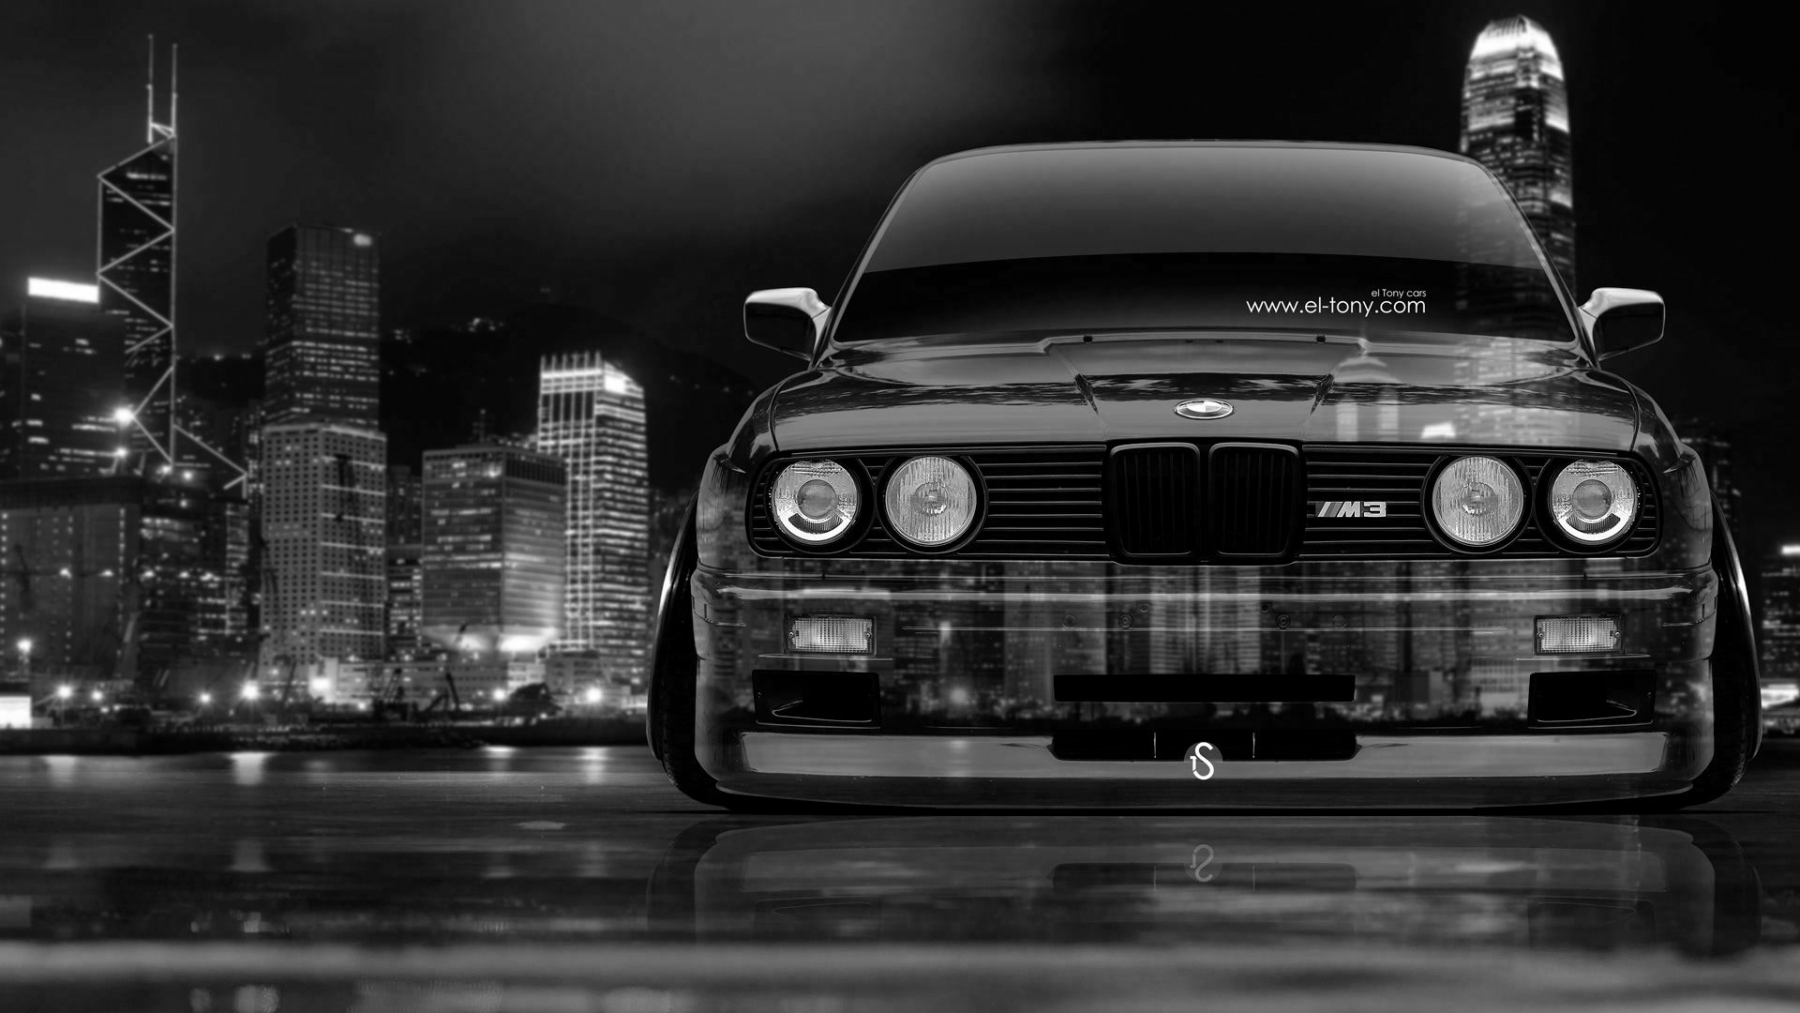 Bmw E30 M3 Hd Wallpapers Background Images Photos